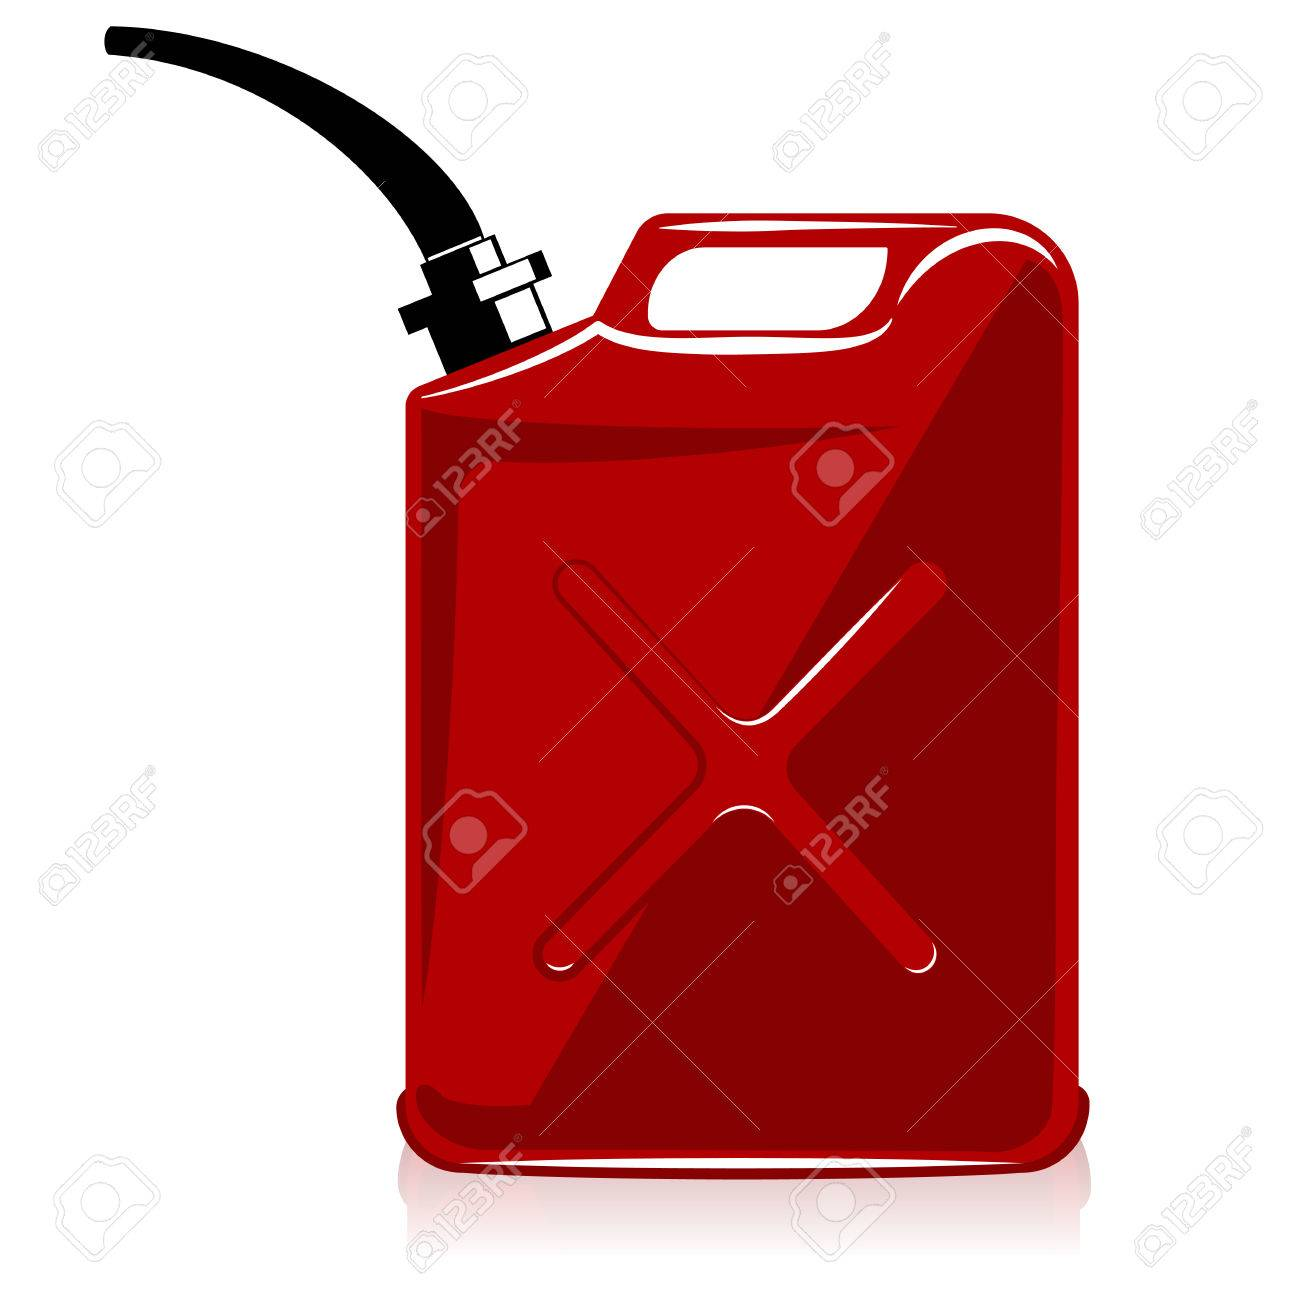 Fuel container or gas can. vector Stock Vector - 27485236